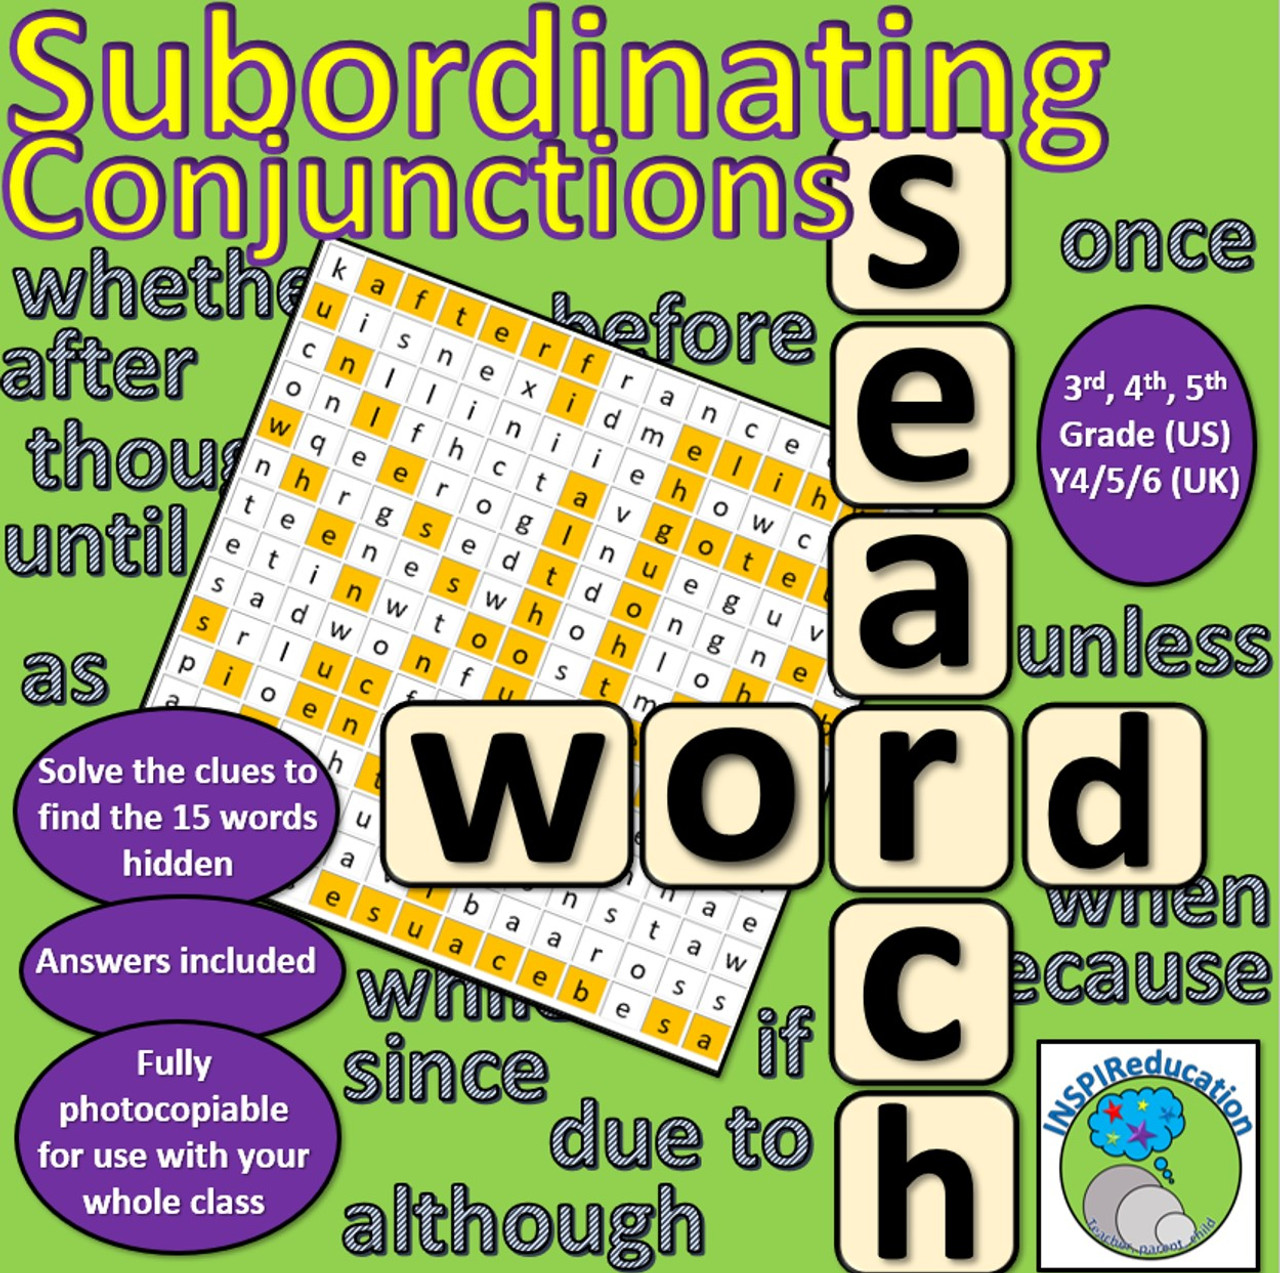 hight resolution of Subordinating Conjunctions Wordsearch (Find all 15 conjunctions) - Amped Up  Learning